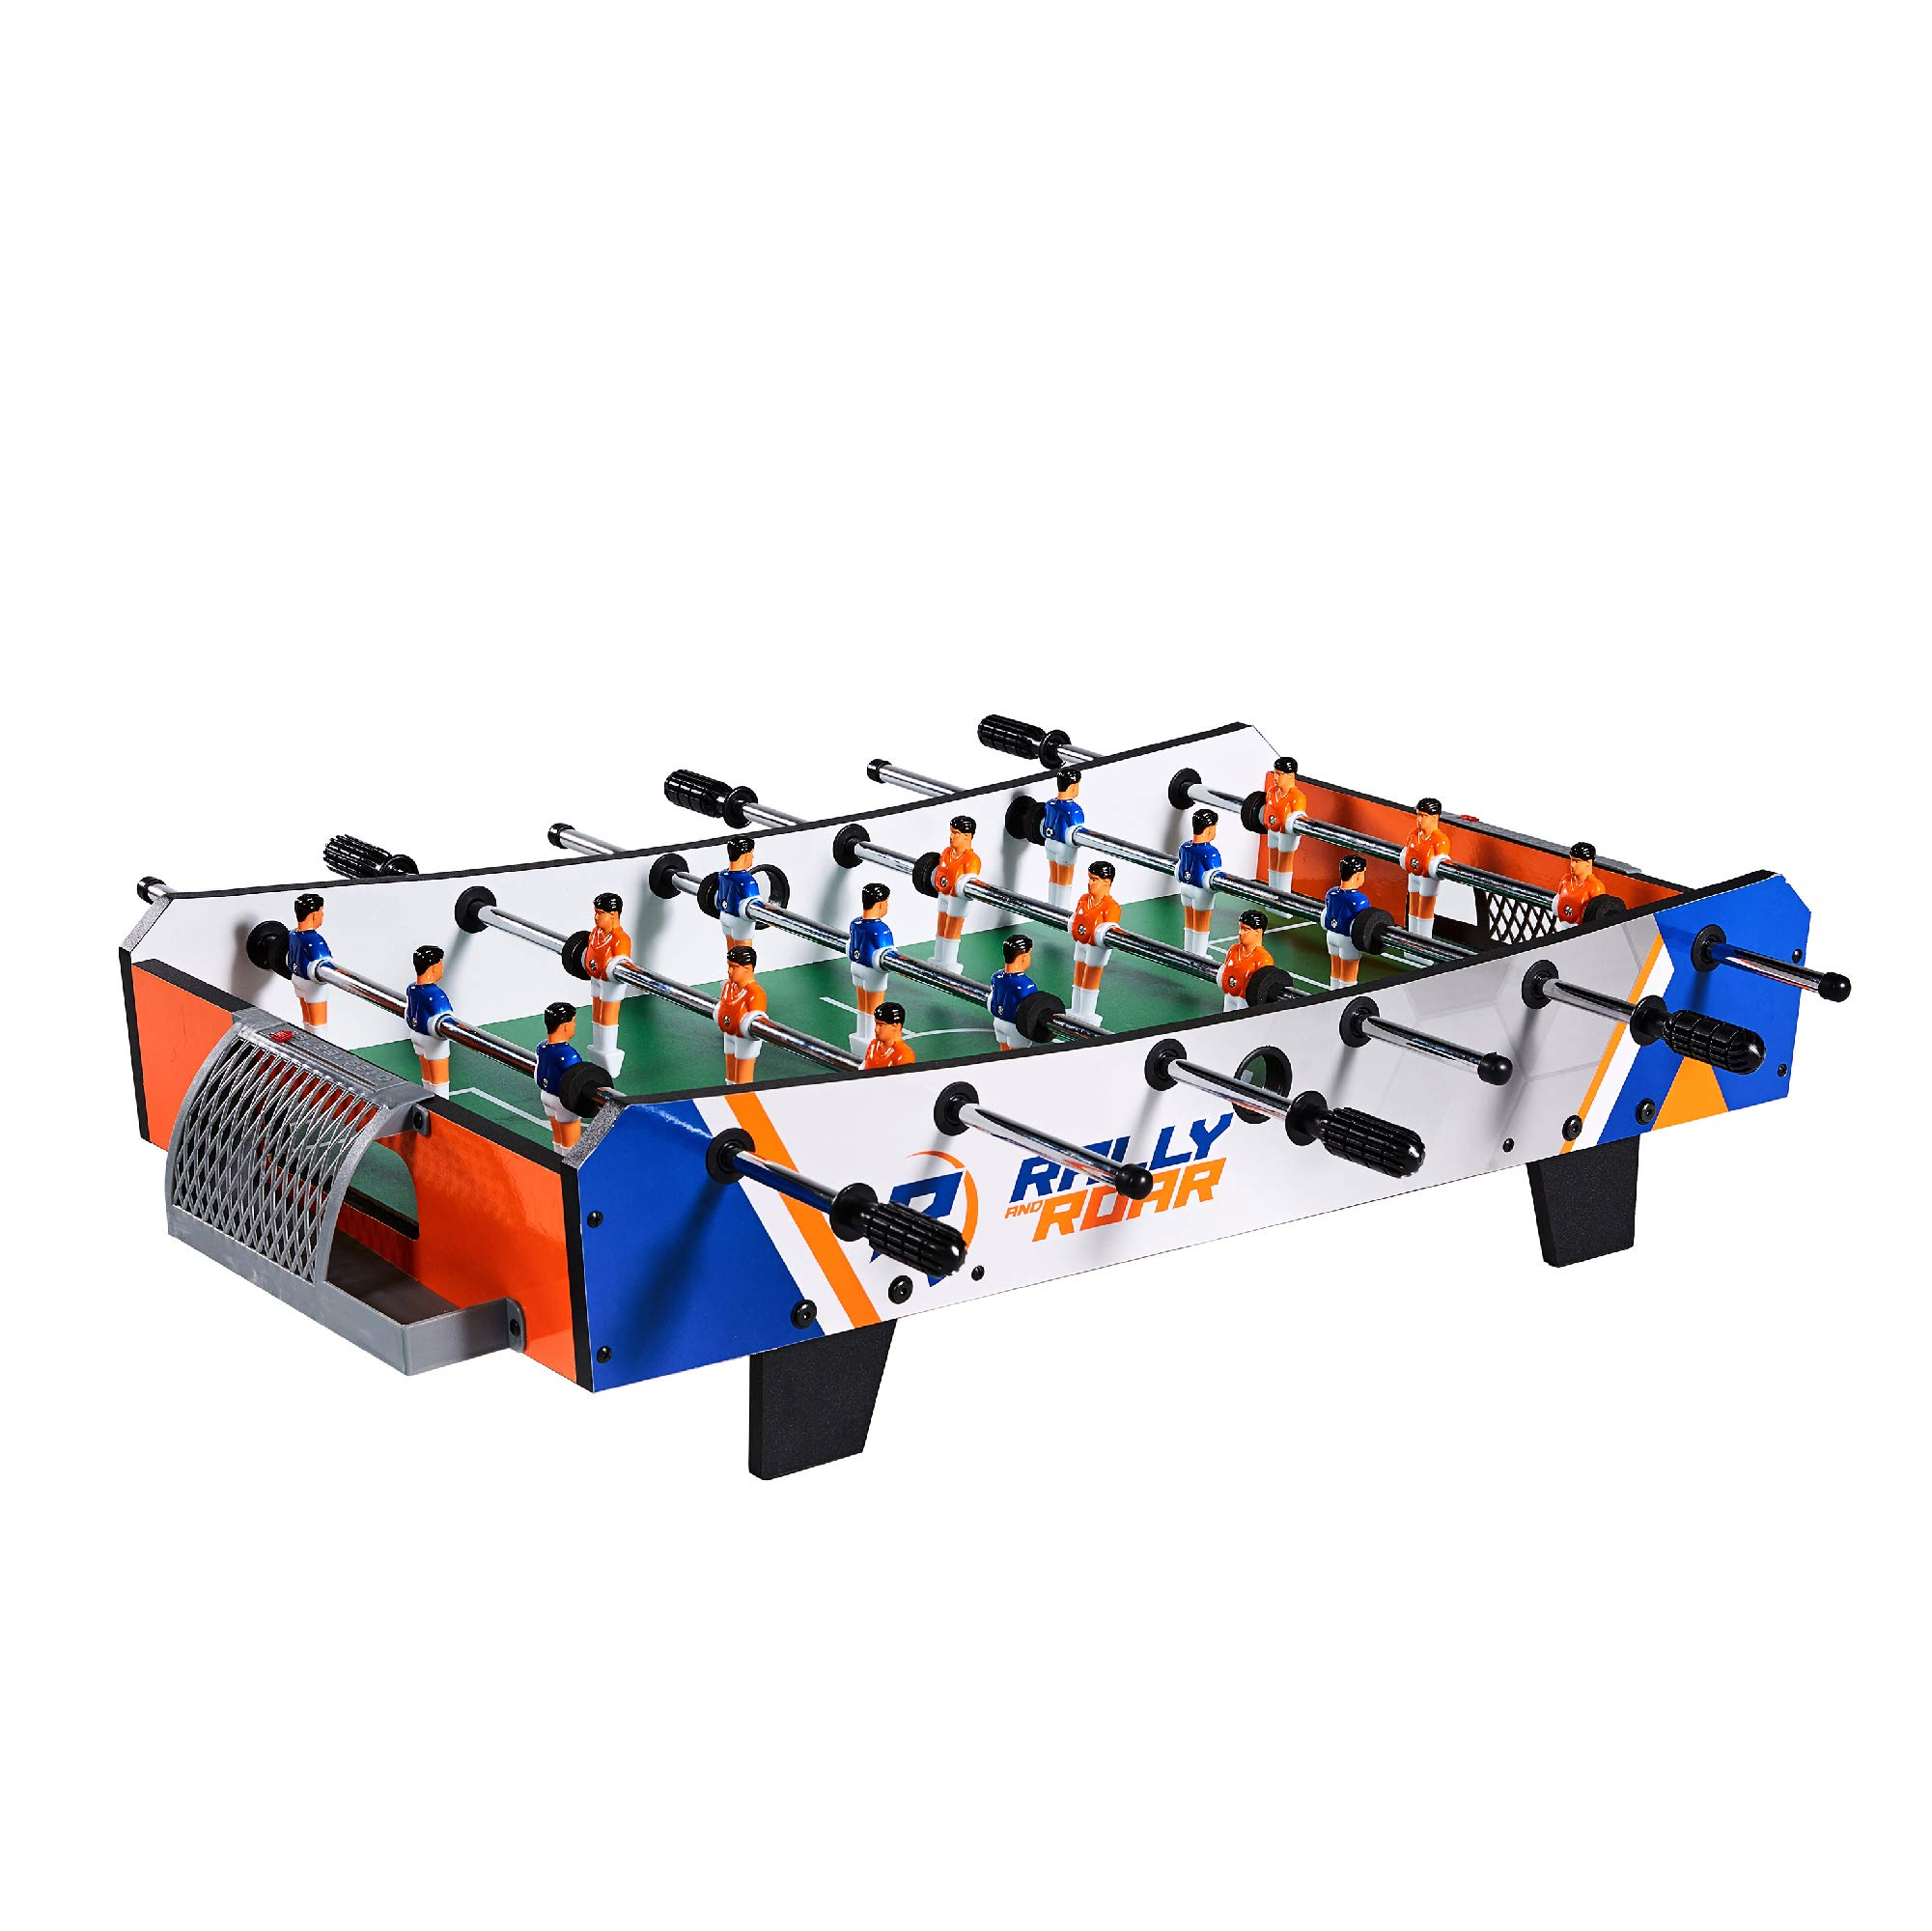 Rally and Roar Foosball Tabletop Games and Accessories, Mini Size - Fun, Portable, Foosball Soccer Tabletops Soccer - Recreational Hand Soccer for Game Rooms, Arcades, Bars, for Adults, Family Night by Rally and Roar